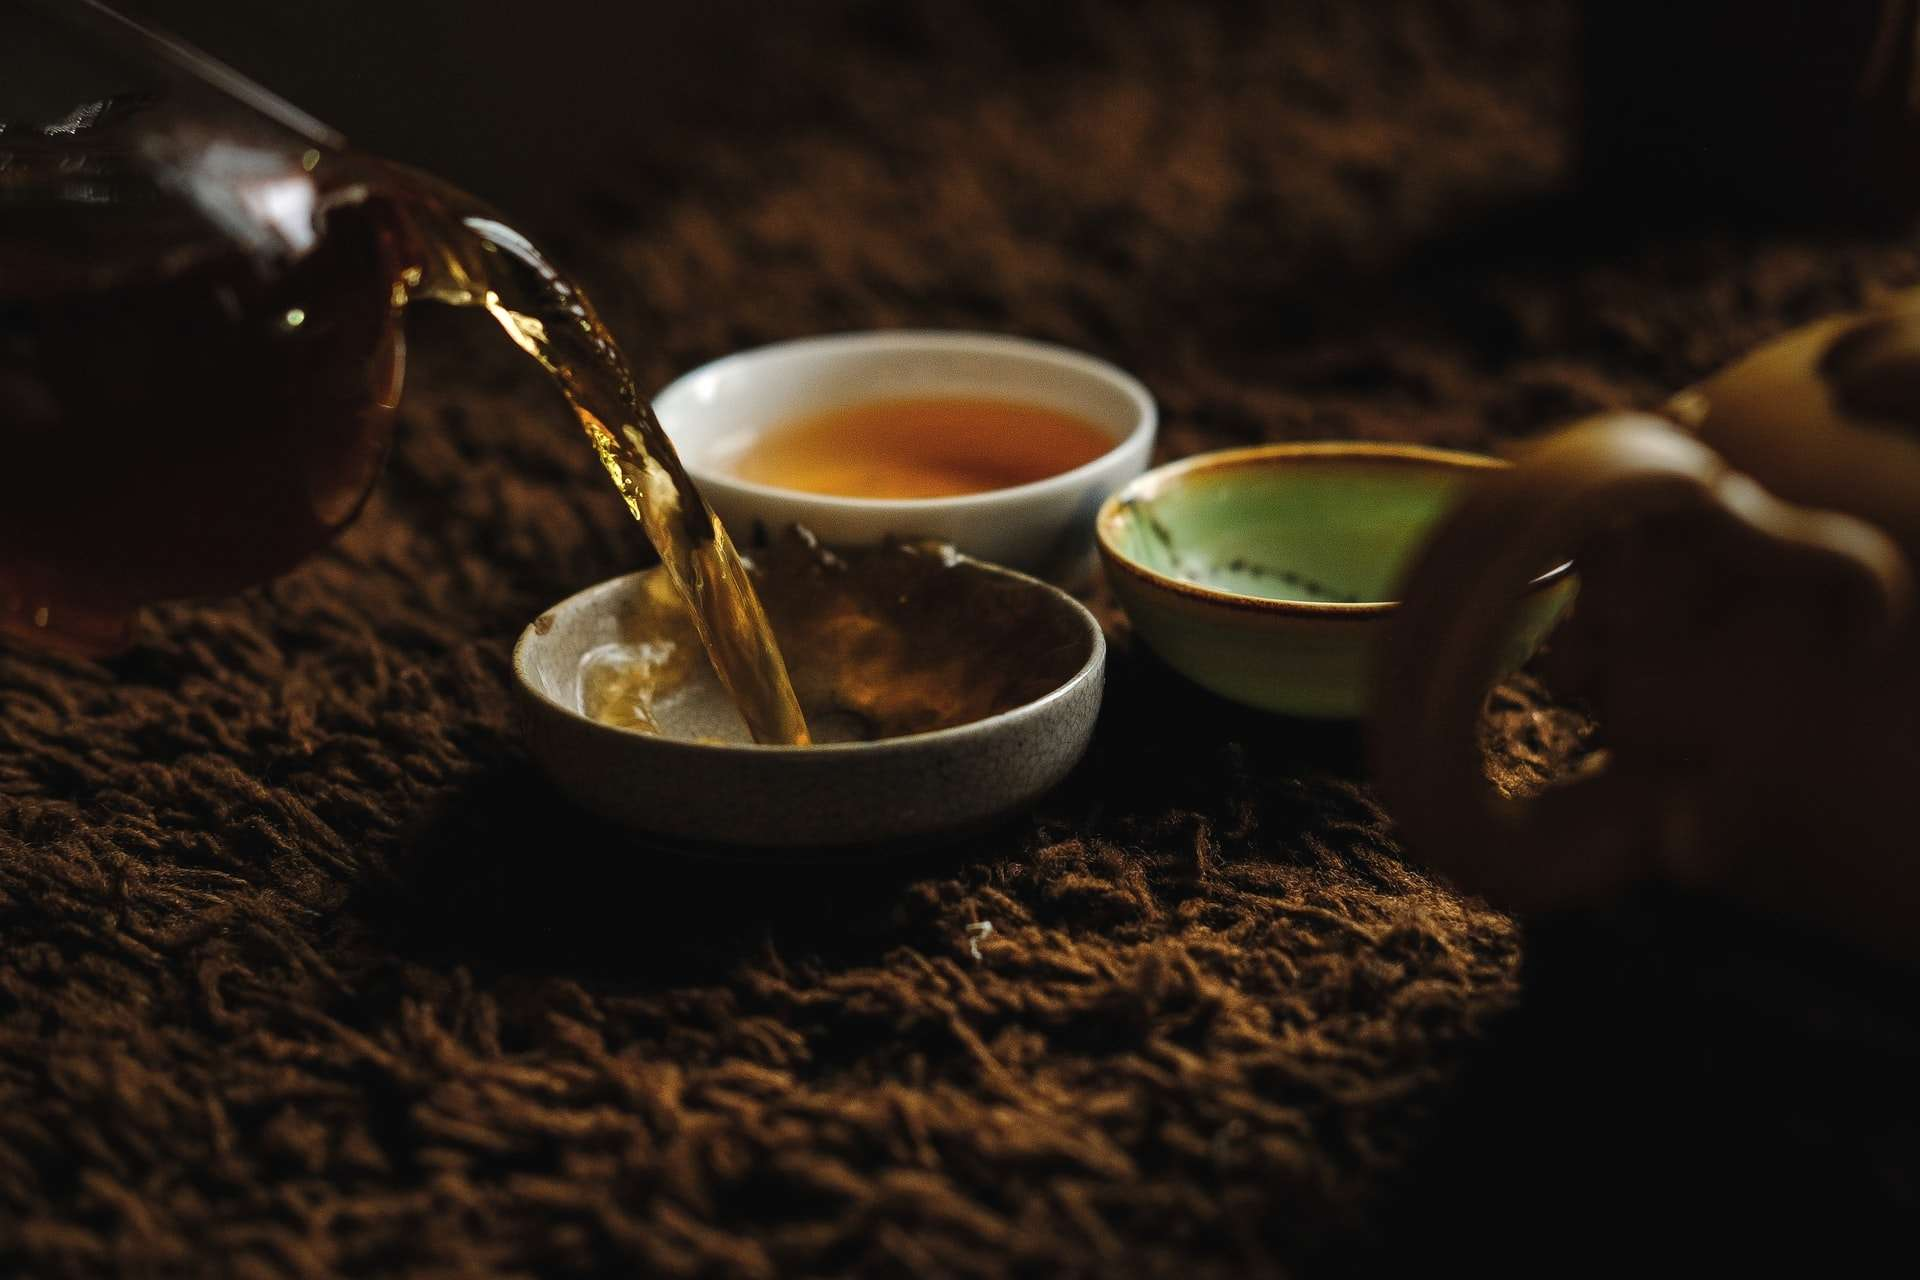 Photo of tea being poured into three differently-colored ceramic tea cups